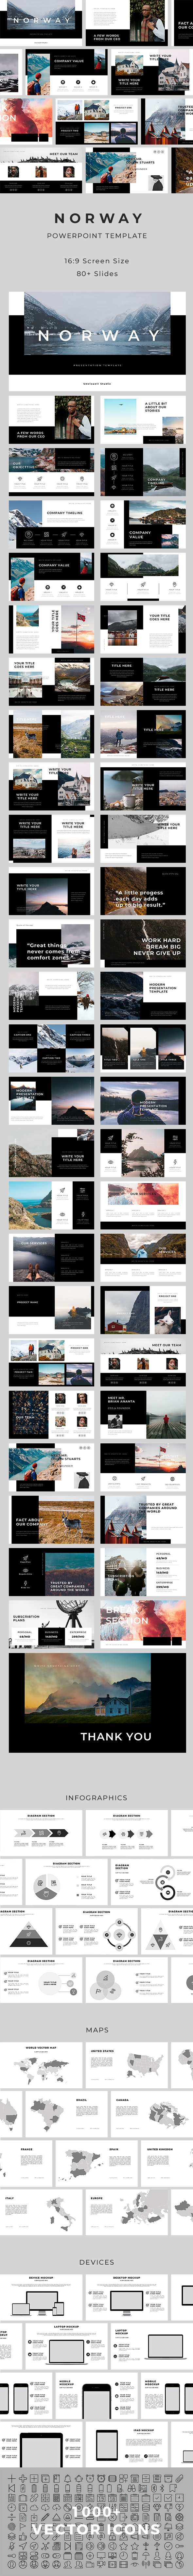 Norway PowerPoint Template - Creative PowerPoint Templates